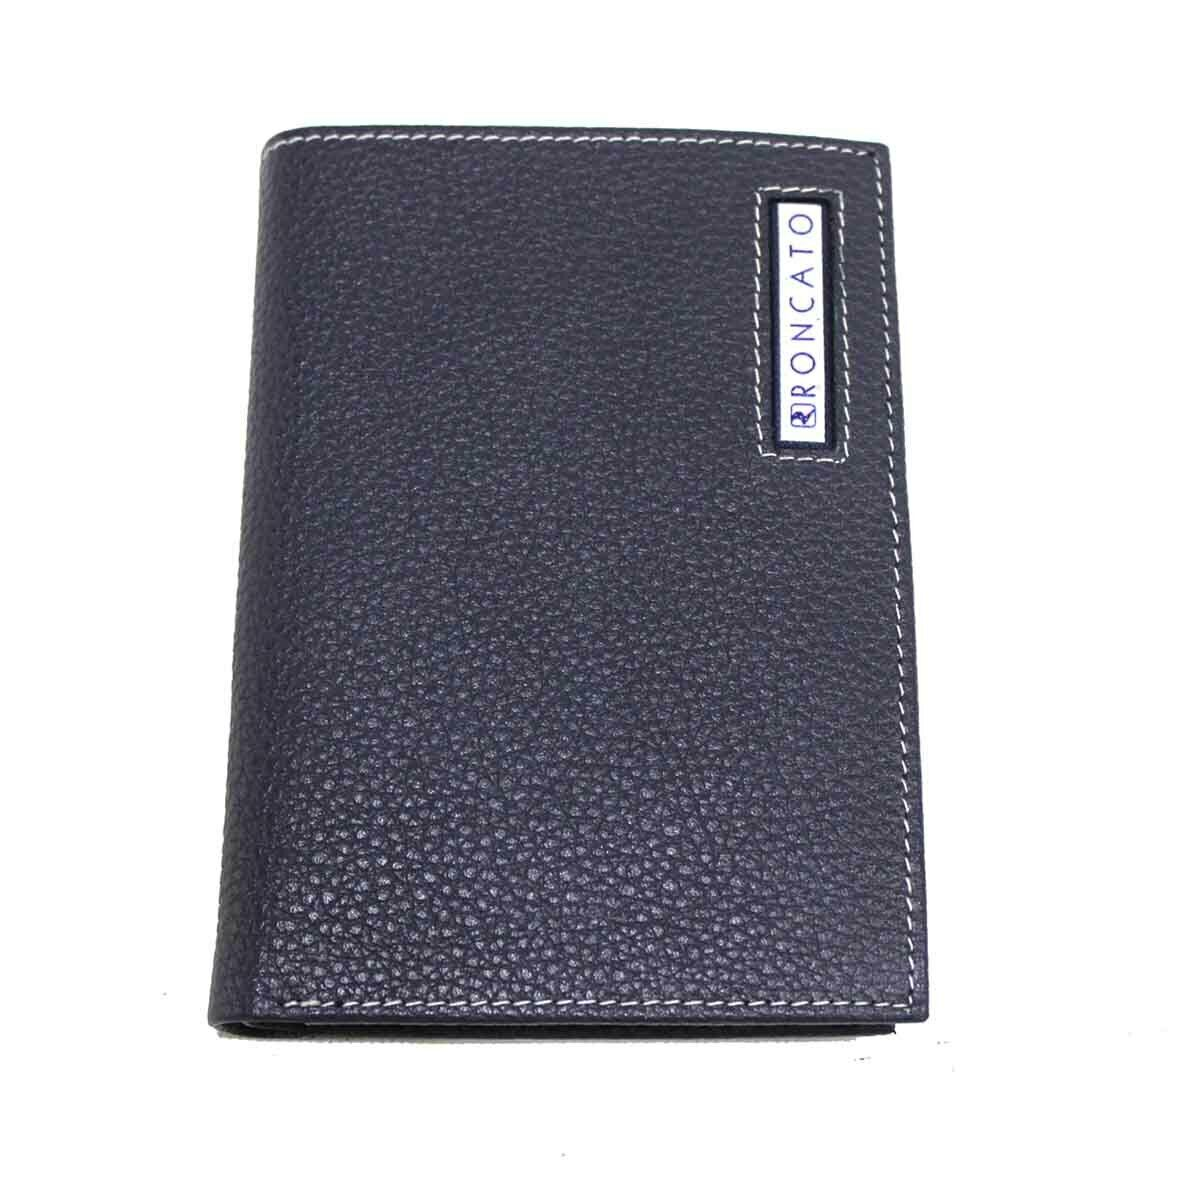 Men's Small Vertical Wallet In Leather Coin Pocket Credit Cards Banknotes Holder